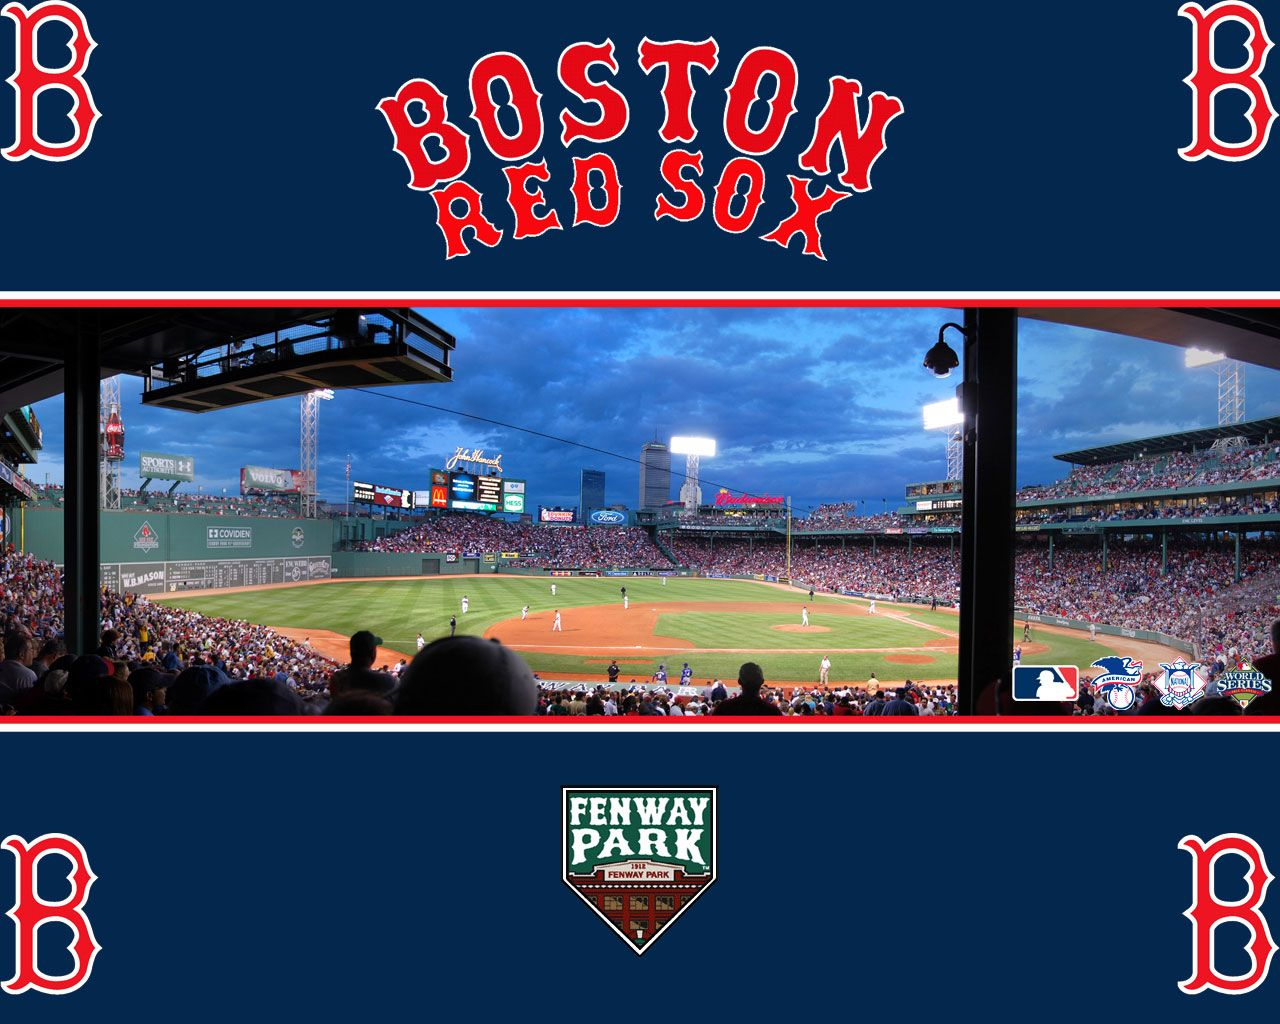 Boston Red Sox wallpapers | Boston Red Sox background - Page 6 ...